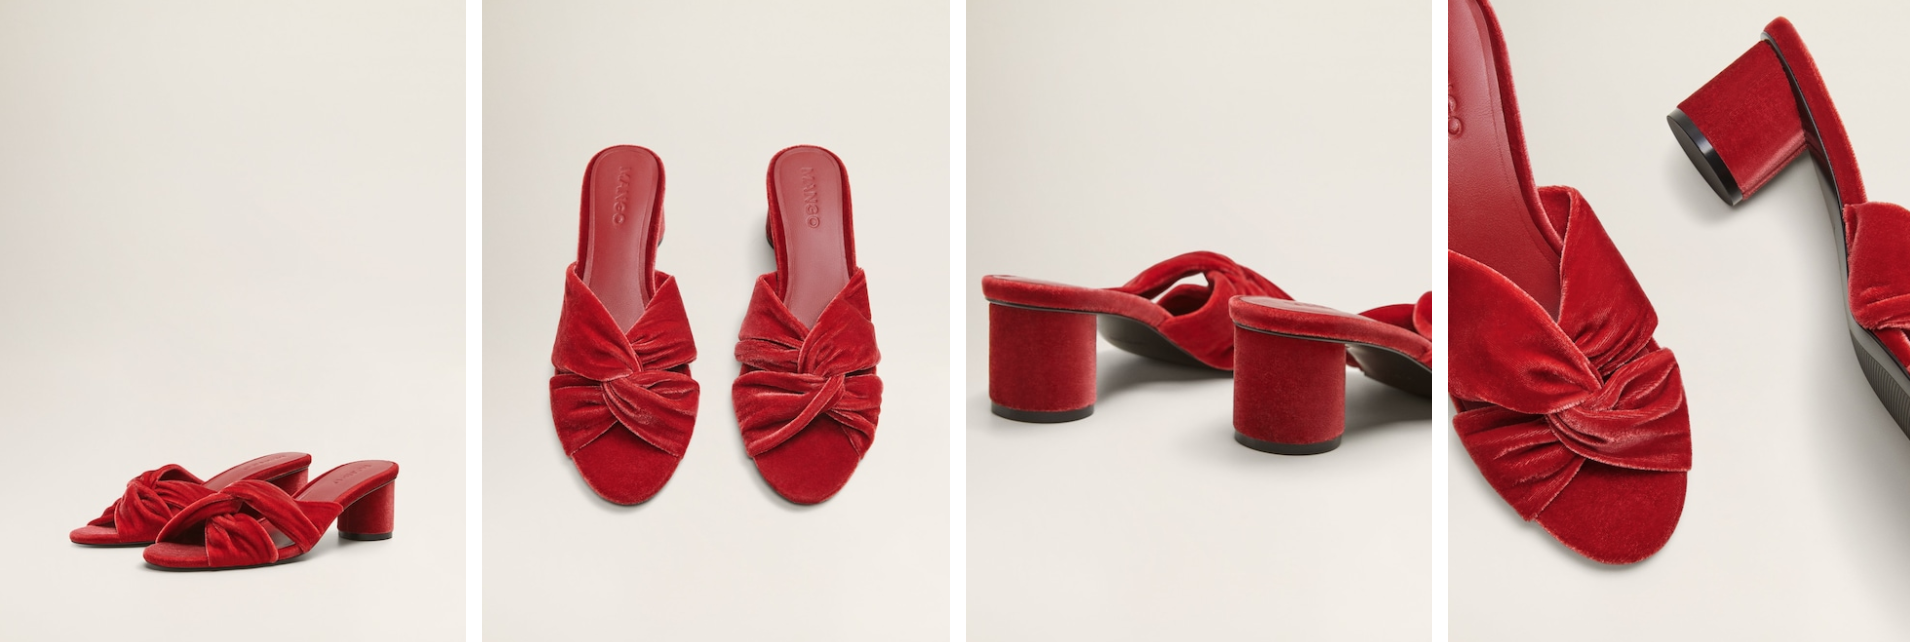 Cute knot velvet sandals - Find them here